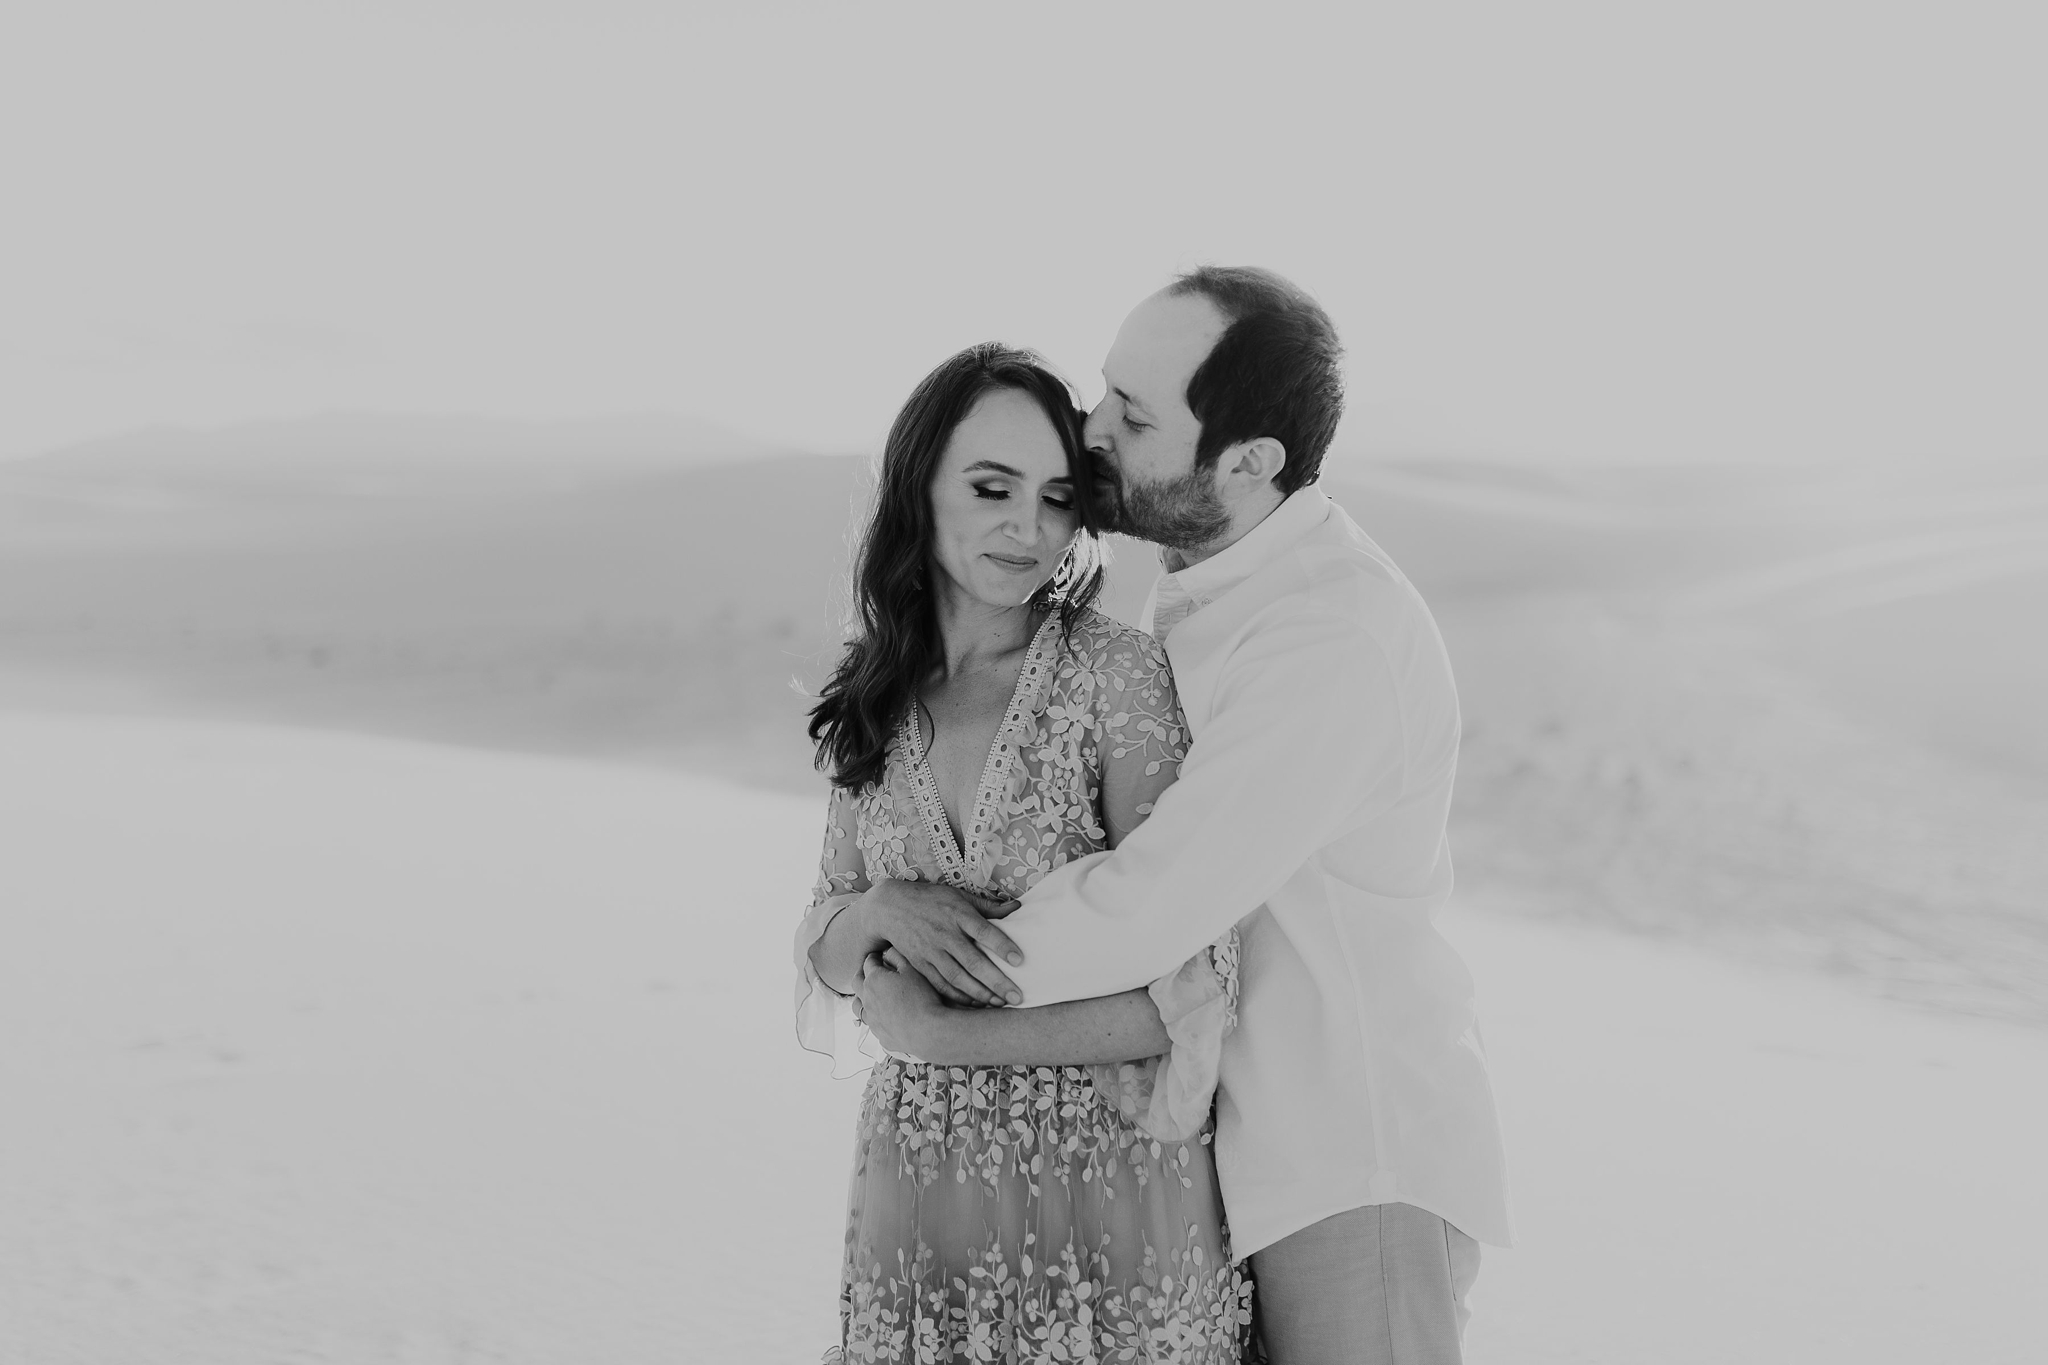 Alicia+lucia+photography+-+albuquerque+wedding+photographer+-+santa+fe+wedding+photography+-+new+mexico+wedding+photographer+-+new+mexico+wedding+-+new+mexico+engagement+-+white+sands+engagement+-+white+sands+national+monument_0032.jpg